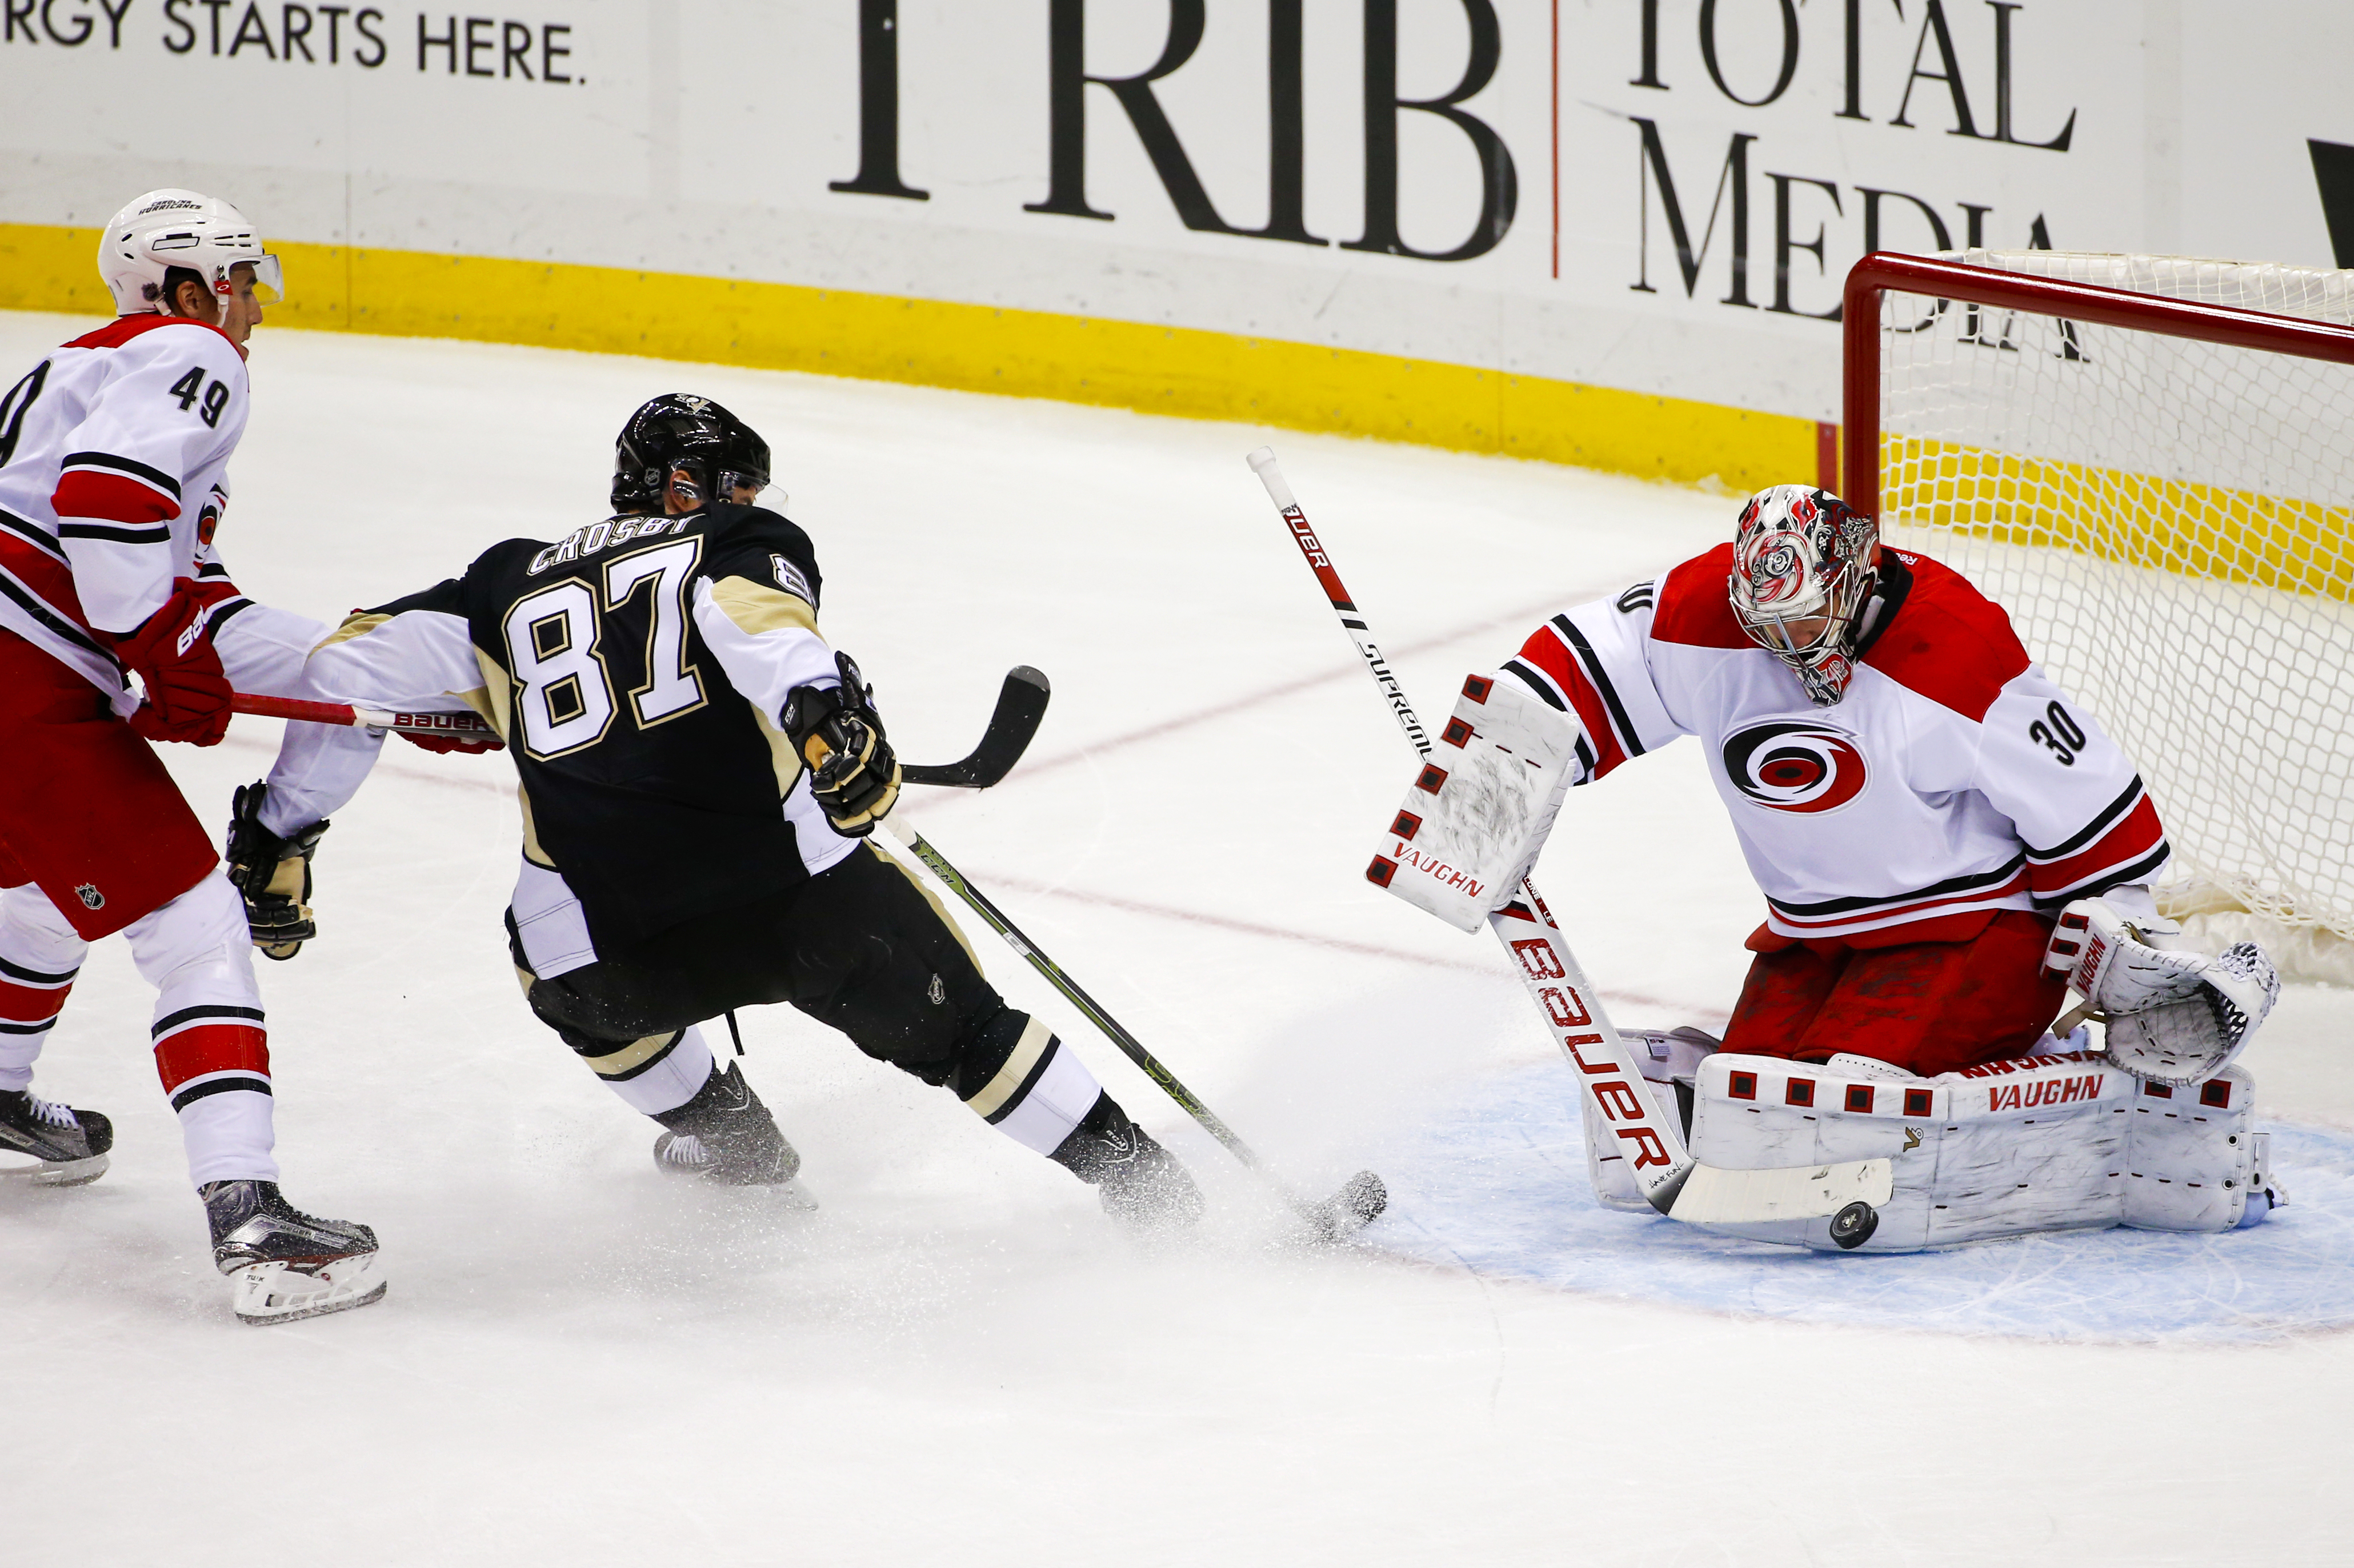 Carolina Hurricanes goalie Cam Ward (30) blocks a shot by Pittsburgh Penguins' Sidney Crosby (87) with Hurricanes' Victor Rask (49) also defending during the first period of an NHL hockey game in Pittsburgh, Saturday, Dec. 19, 2015. (AP Photo/Gene J. Pusk